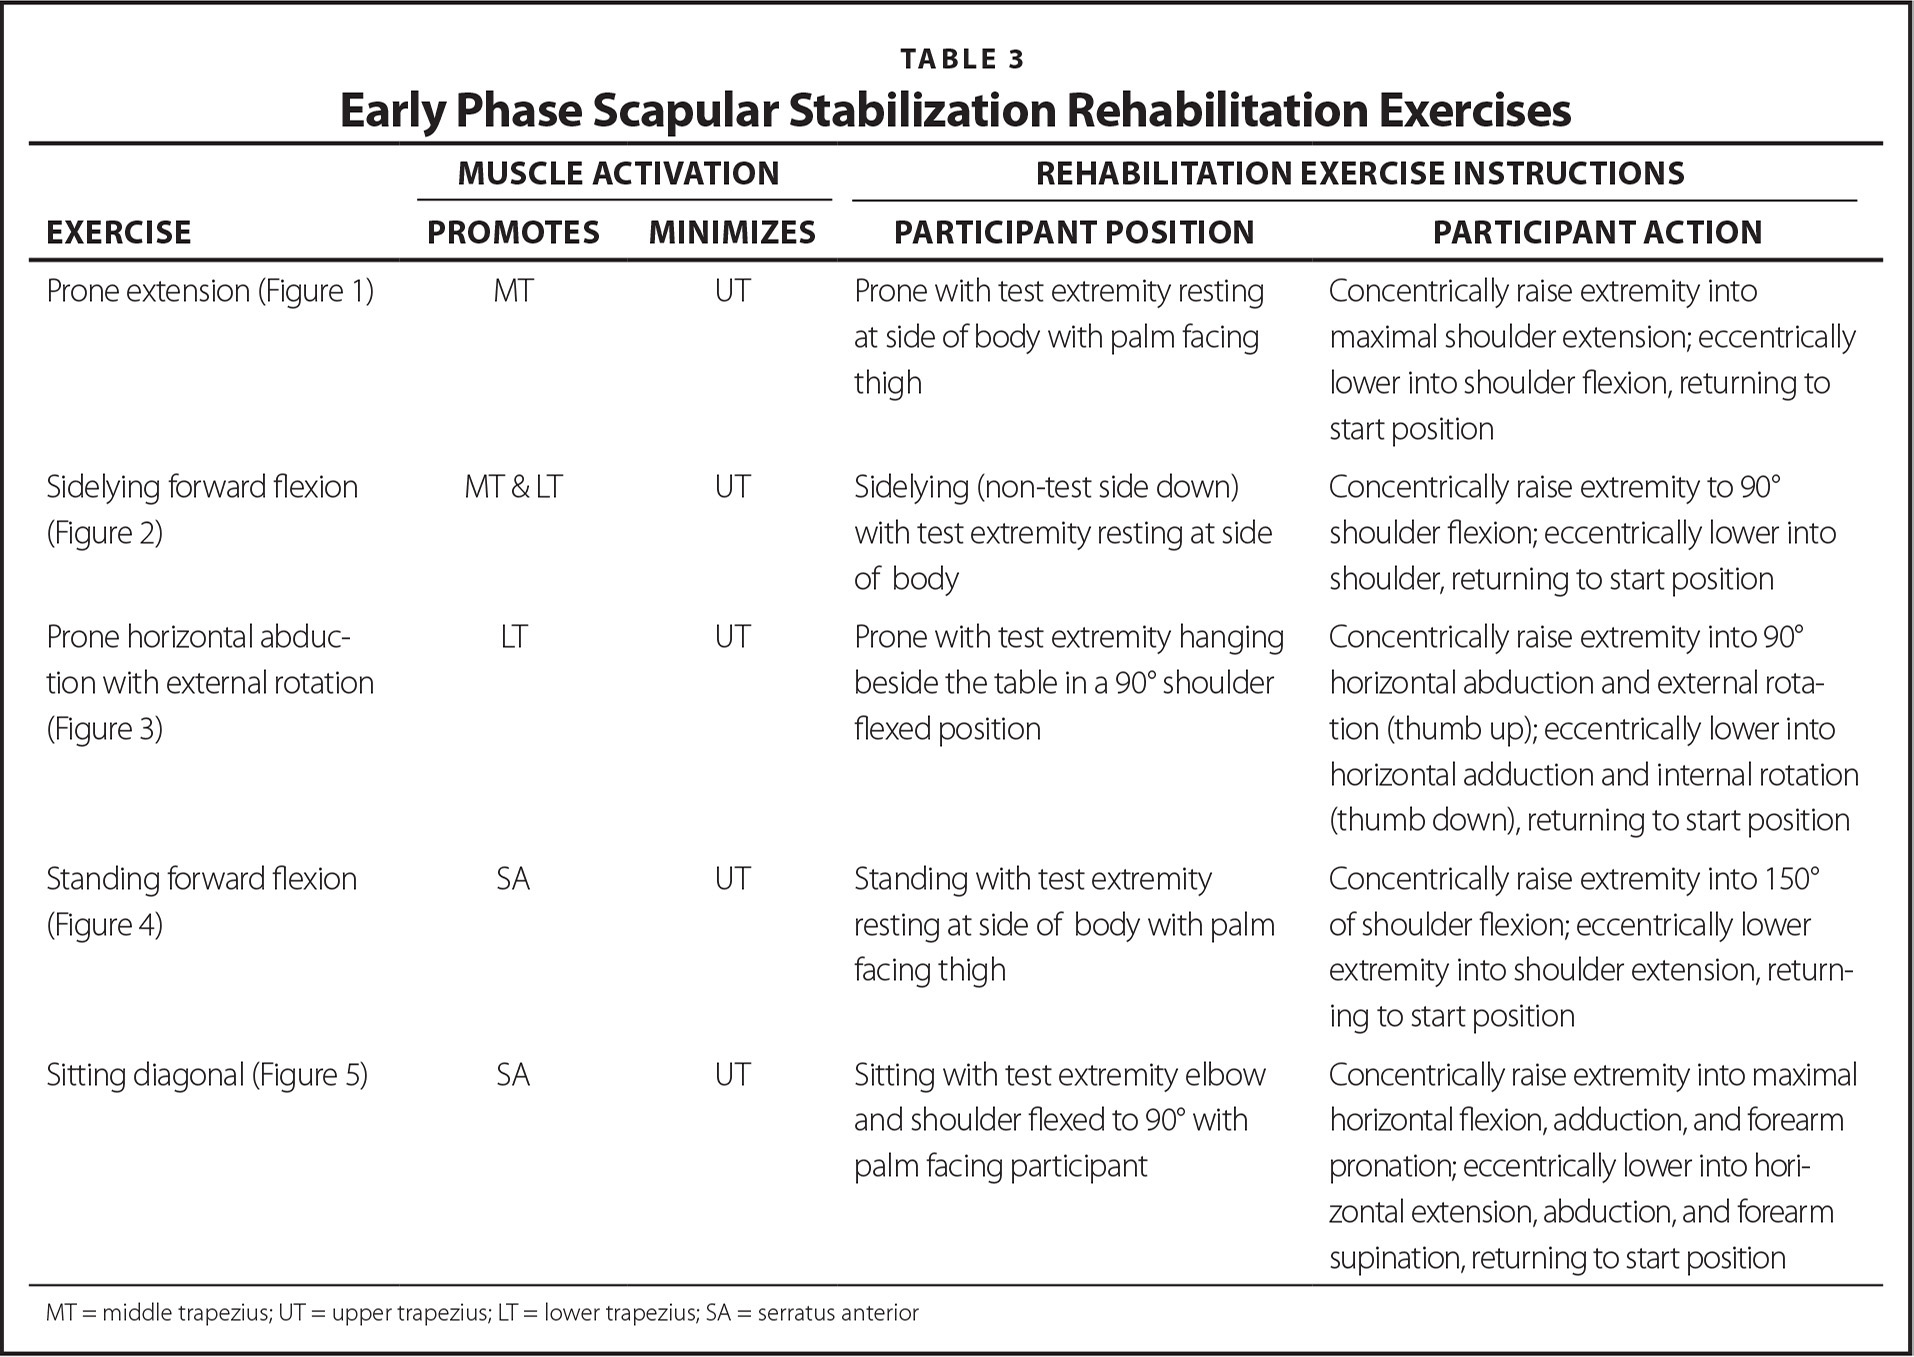 Early Phase Scapular Stabilization Rehabilitation Exercises